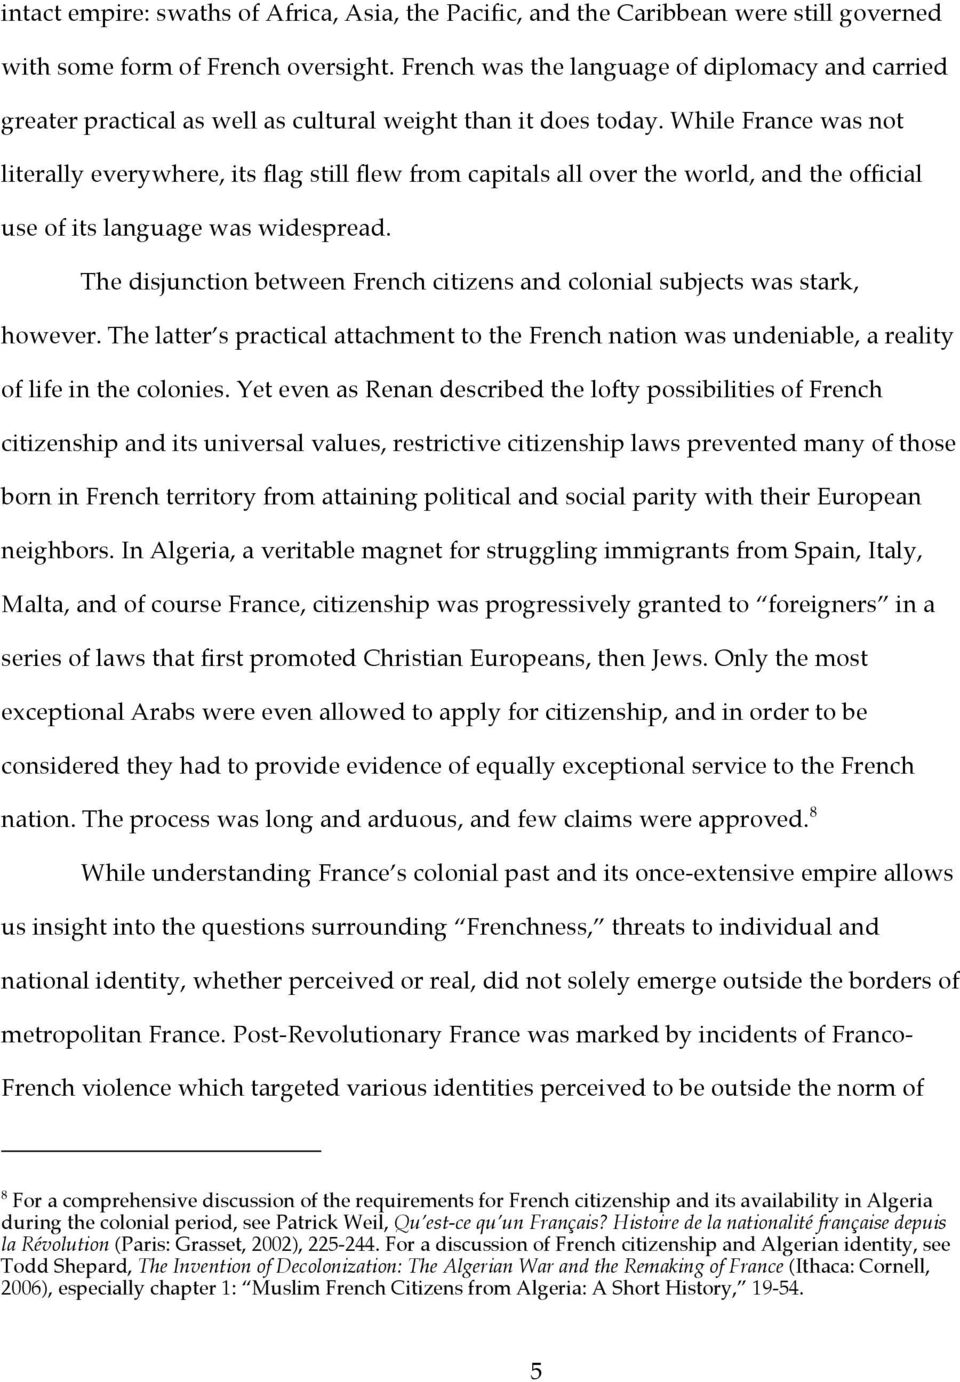 While France was not literally everywhere, its flag still flew from capitals all over the world, and the official use of its language was widespread.